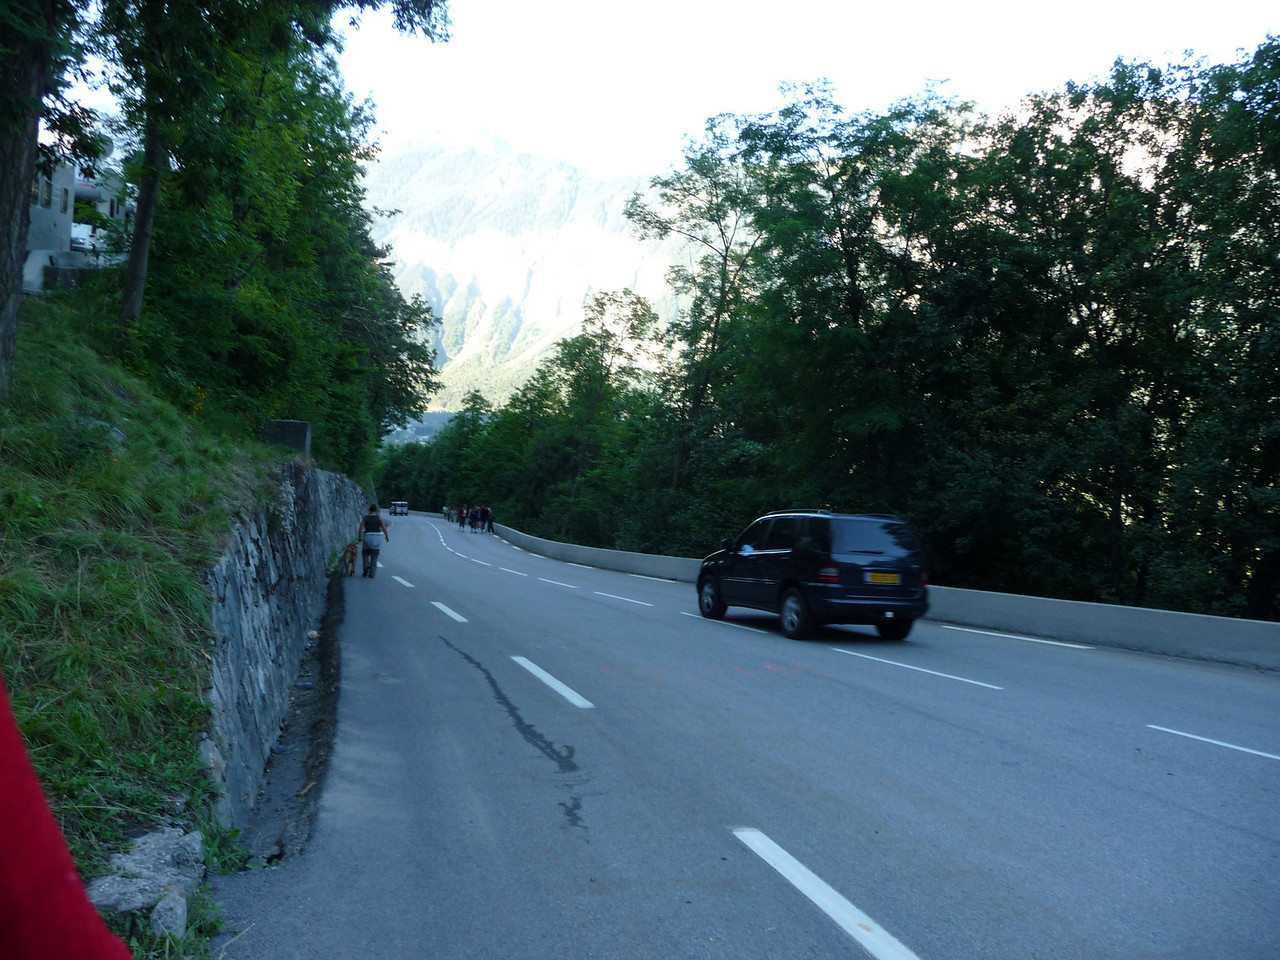 Going up Alpe d'Huez. We started at 8am to beat the heat. It was smart. Location - Alpe d'Huez